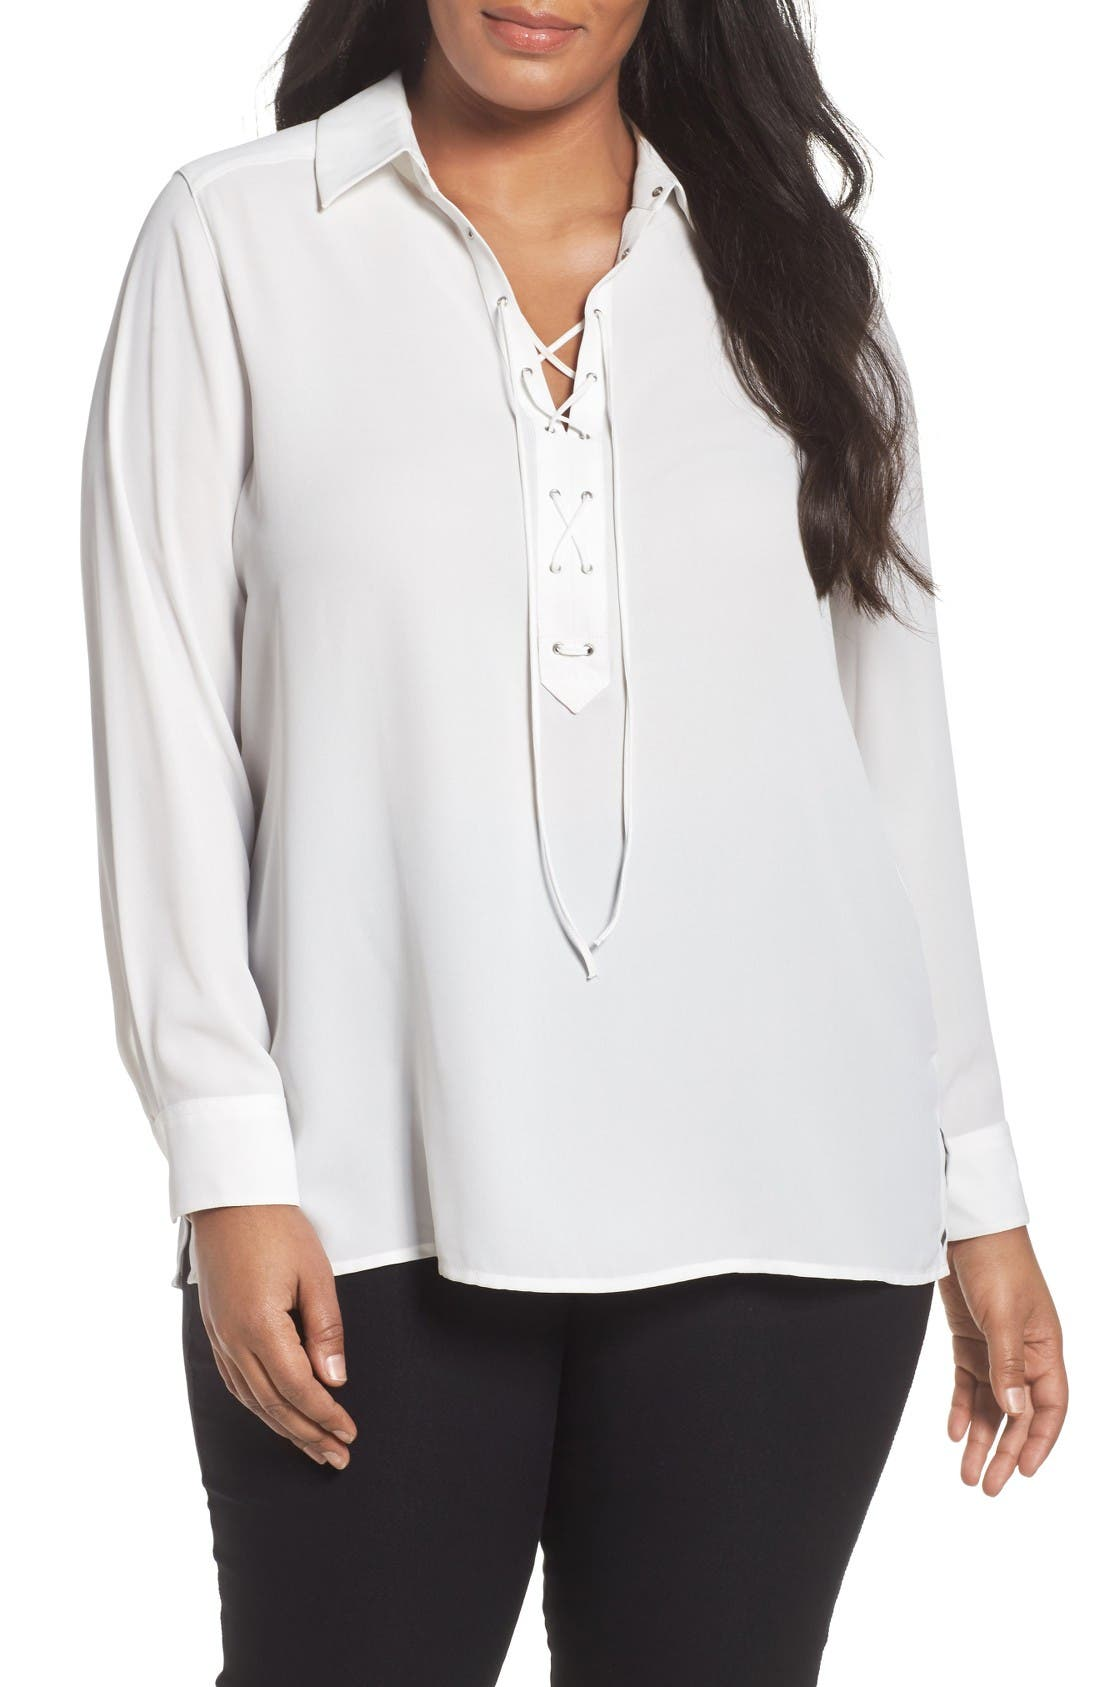 Alternate Image 1 Selected - Foxcroft Lace-Up Blouse (Plus Size)